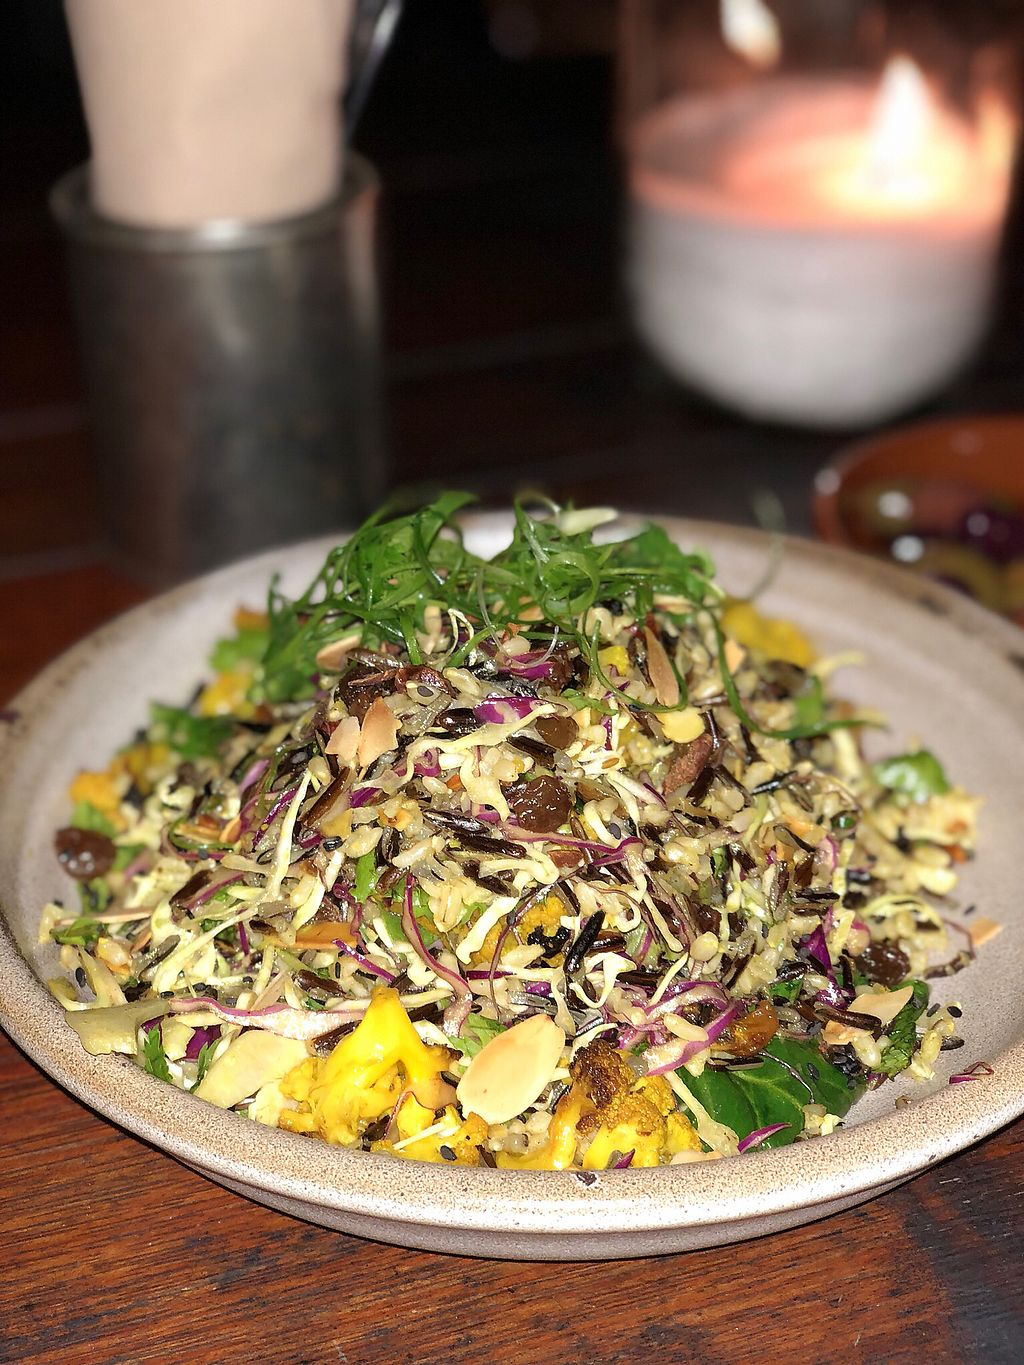 """Photo of Poinciana  by <a href=""""/members/profile/ben_eitel"""">ben_eitel</a> <br/>Black wild rice / turmeric cauliflower / red cabbage l <br/> January 17, 2018  - <a href='/contact/abuse/image/109230/347524'>Report</a>"""